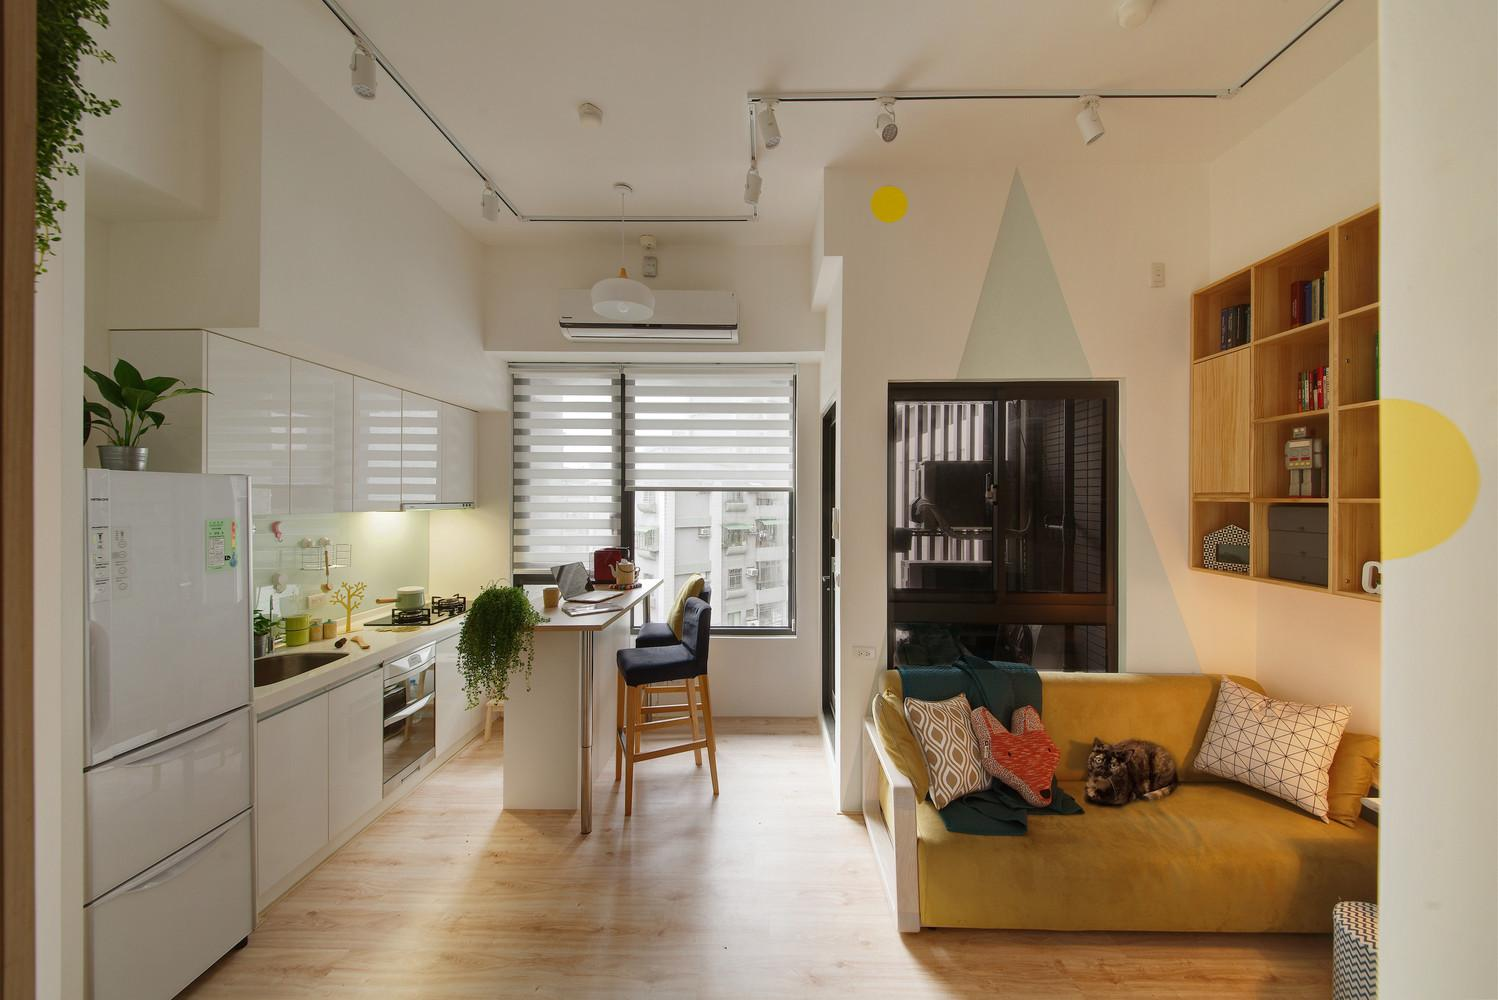 Redesigned Tiny Apartment Loft Features Brighter